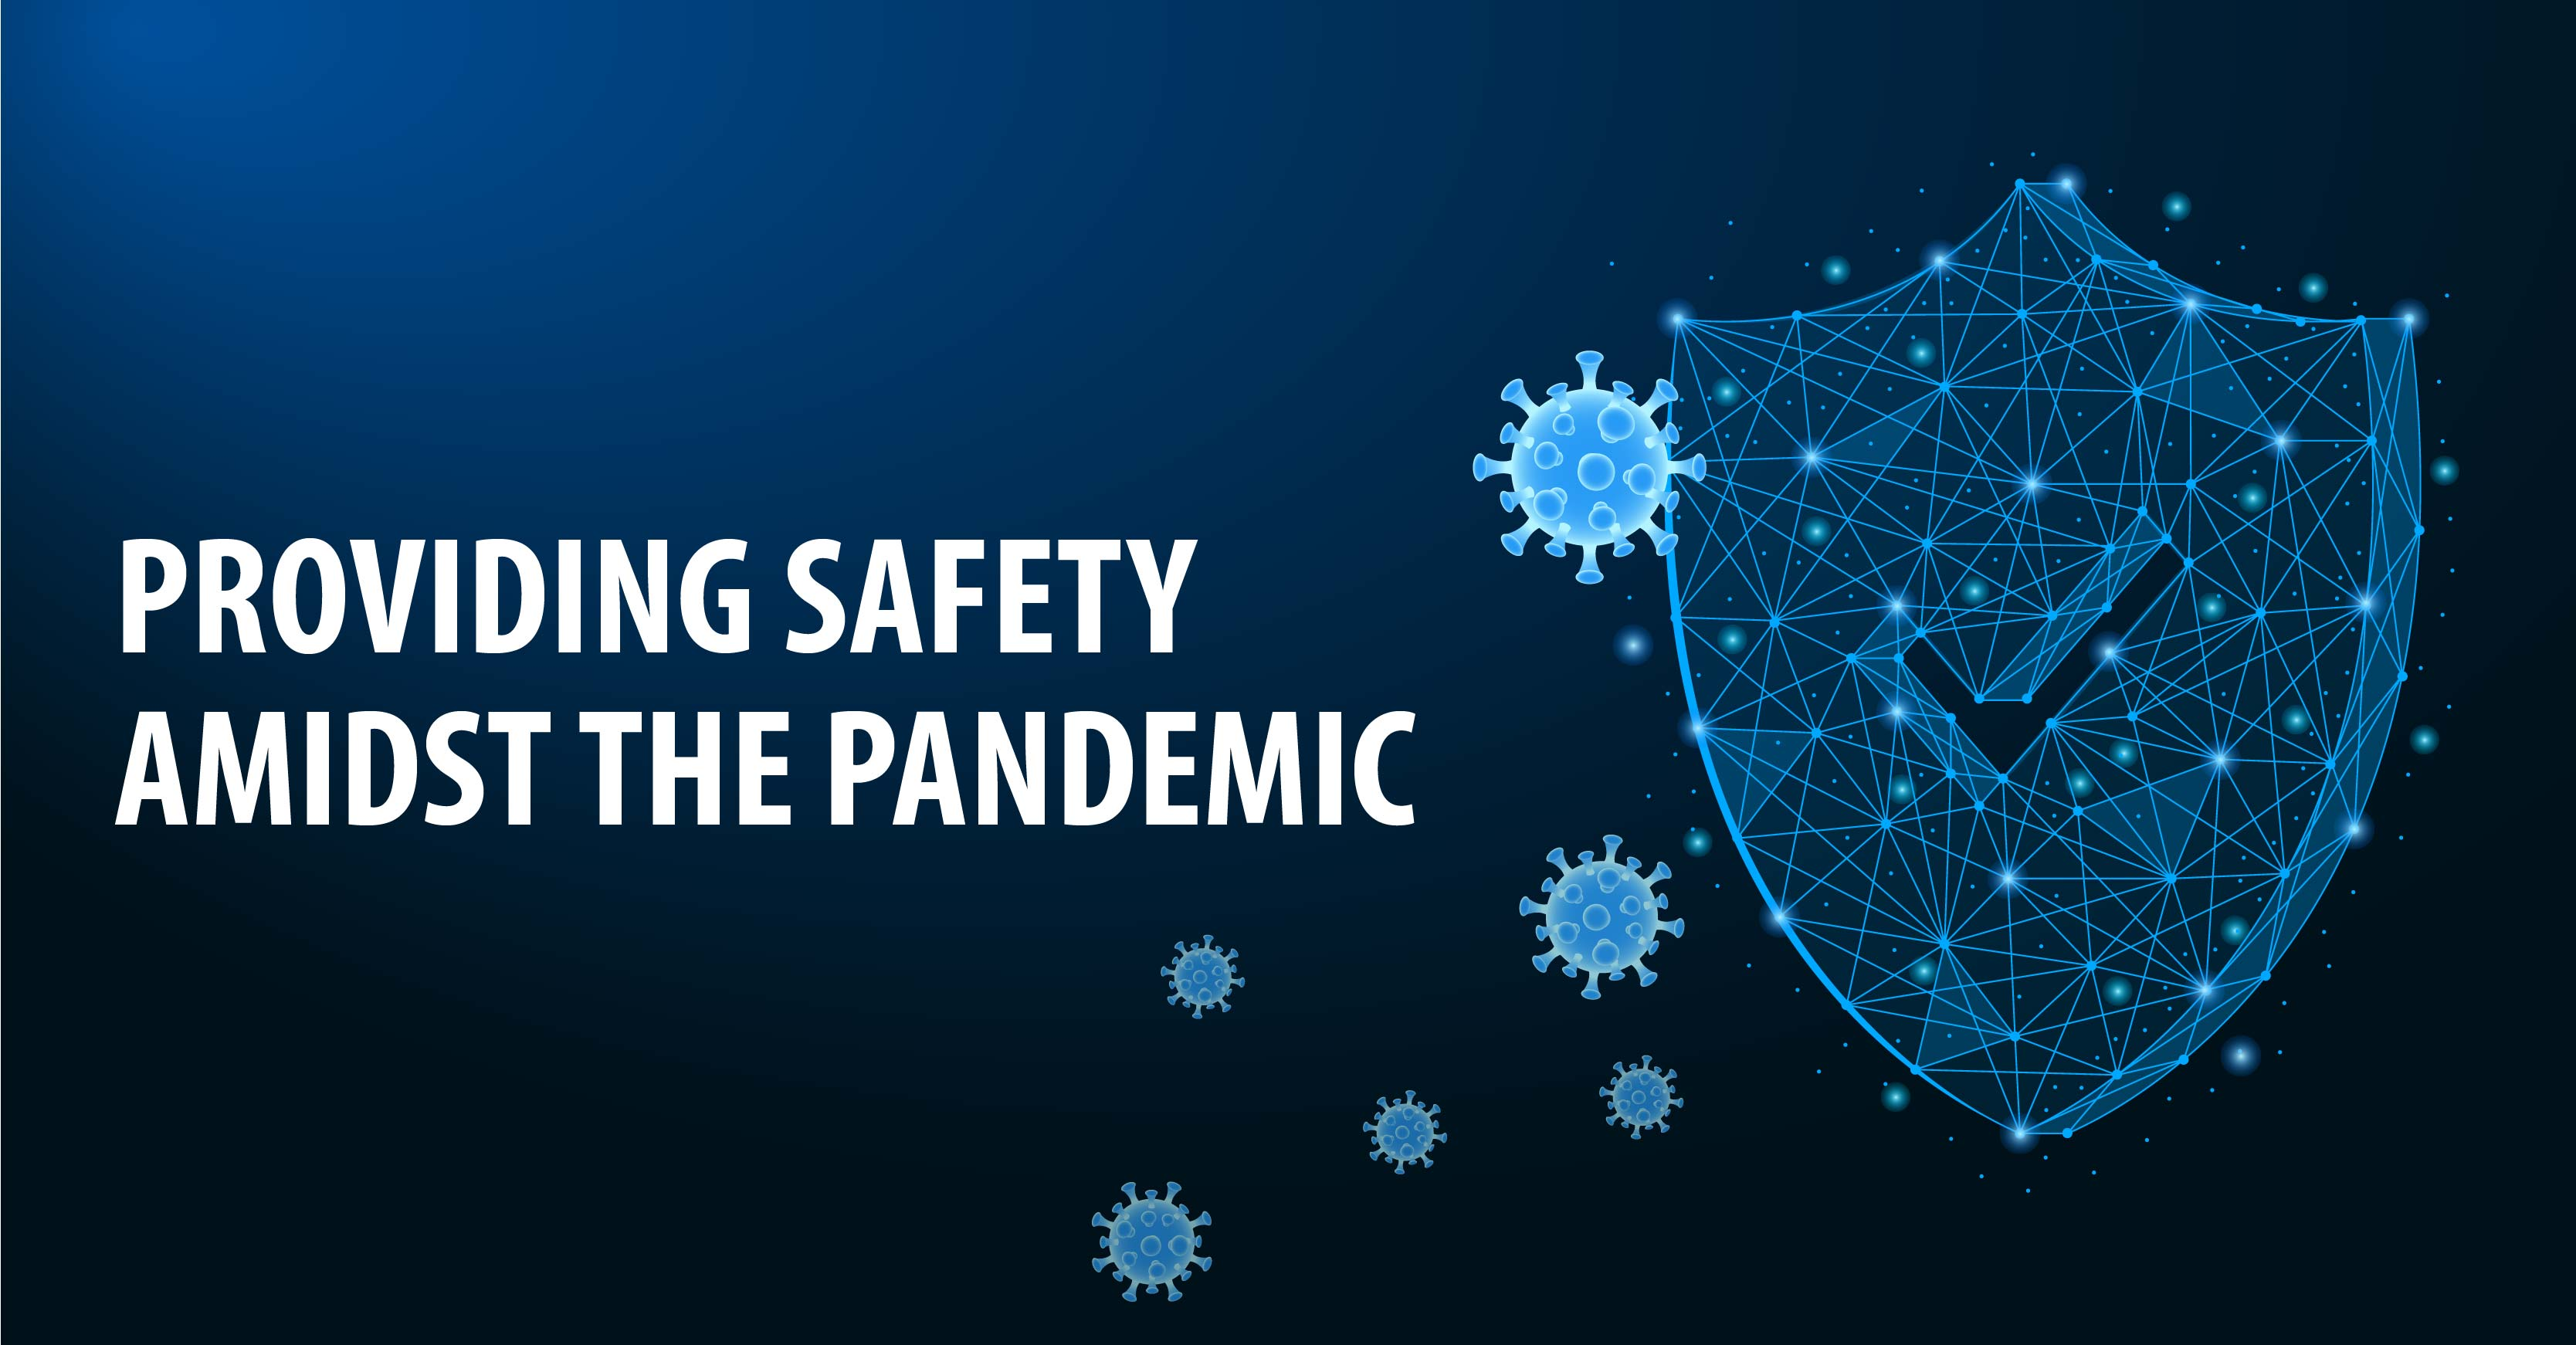 PROVIDING SAFETY AMIDST THE PANDEMIC